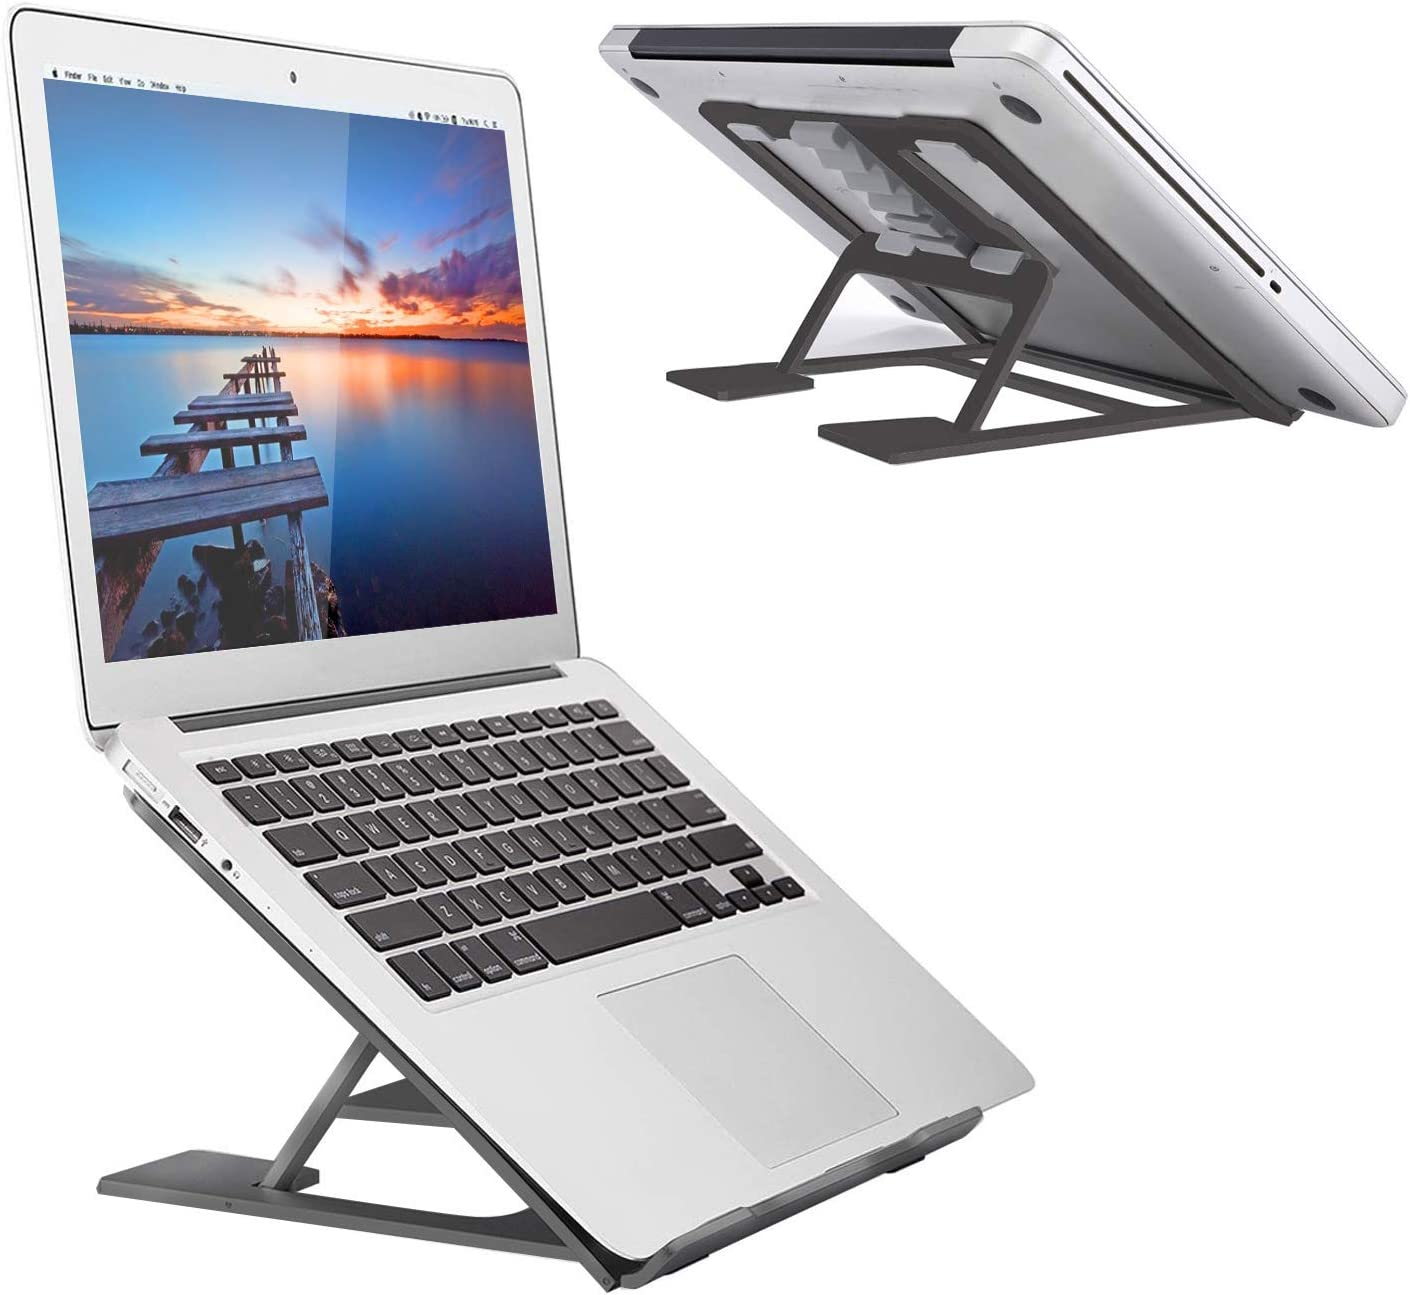 Laptop Stand Aluminum Laptop Computer Riser Holder Ergonomic Portable Height Angles Adjustable Laptop Elevator Notebook PC Holder Compatible with 8-18 Laptops such as MacBook Air Pro Lenovo HP Dell